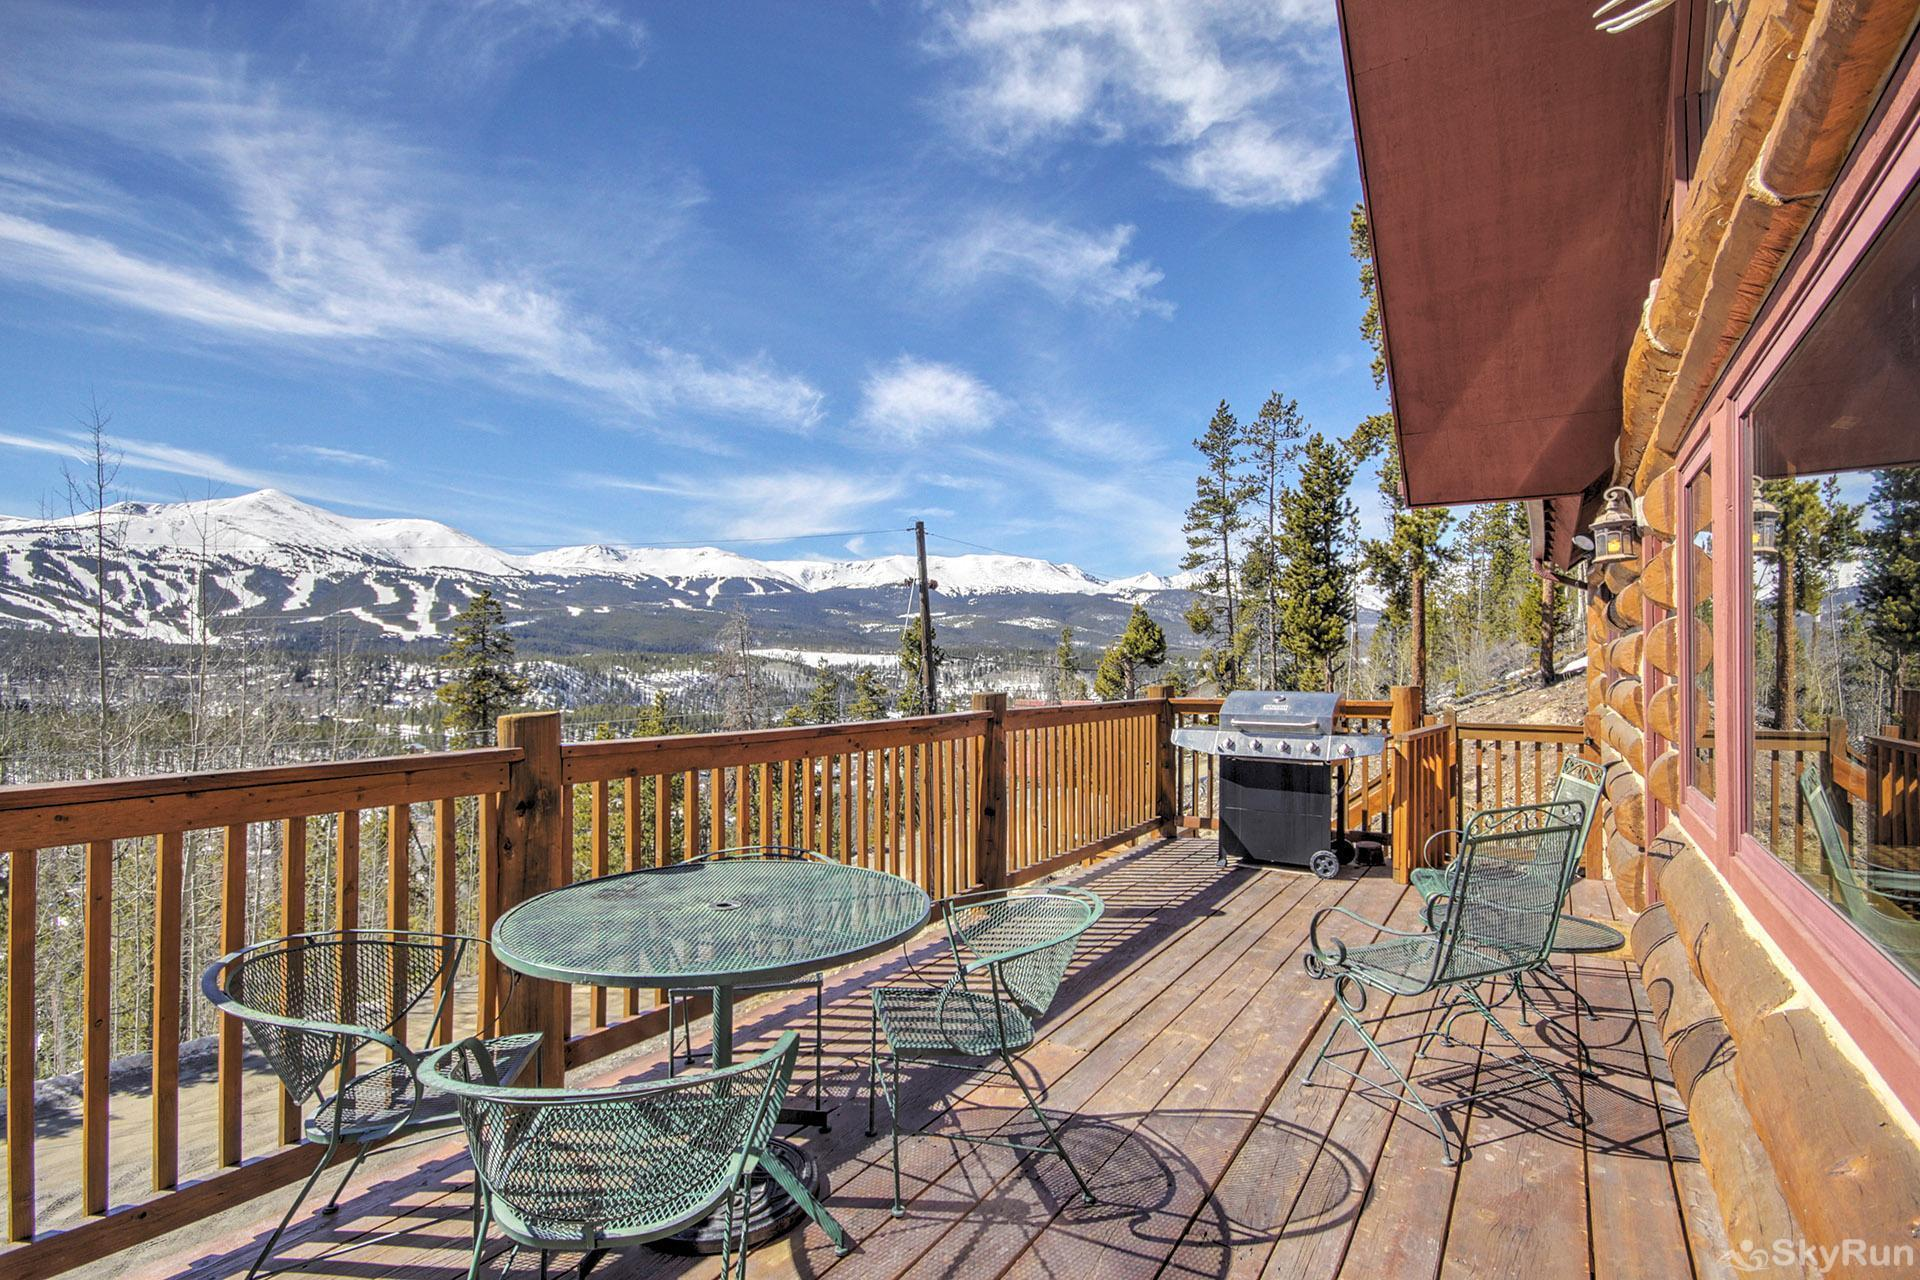 Barton Cabin Deck looking at Breckenridge Mountain